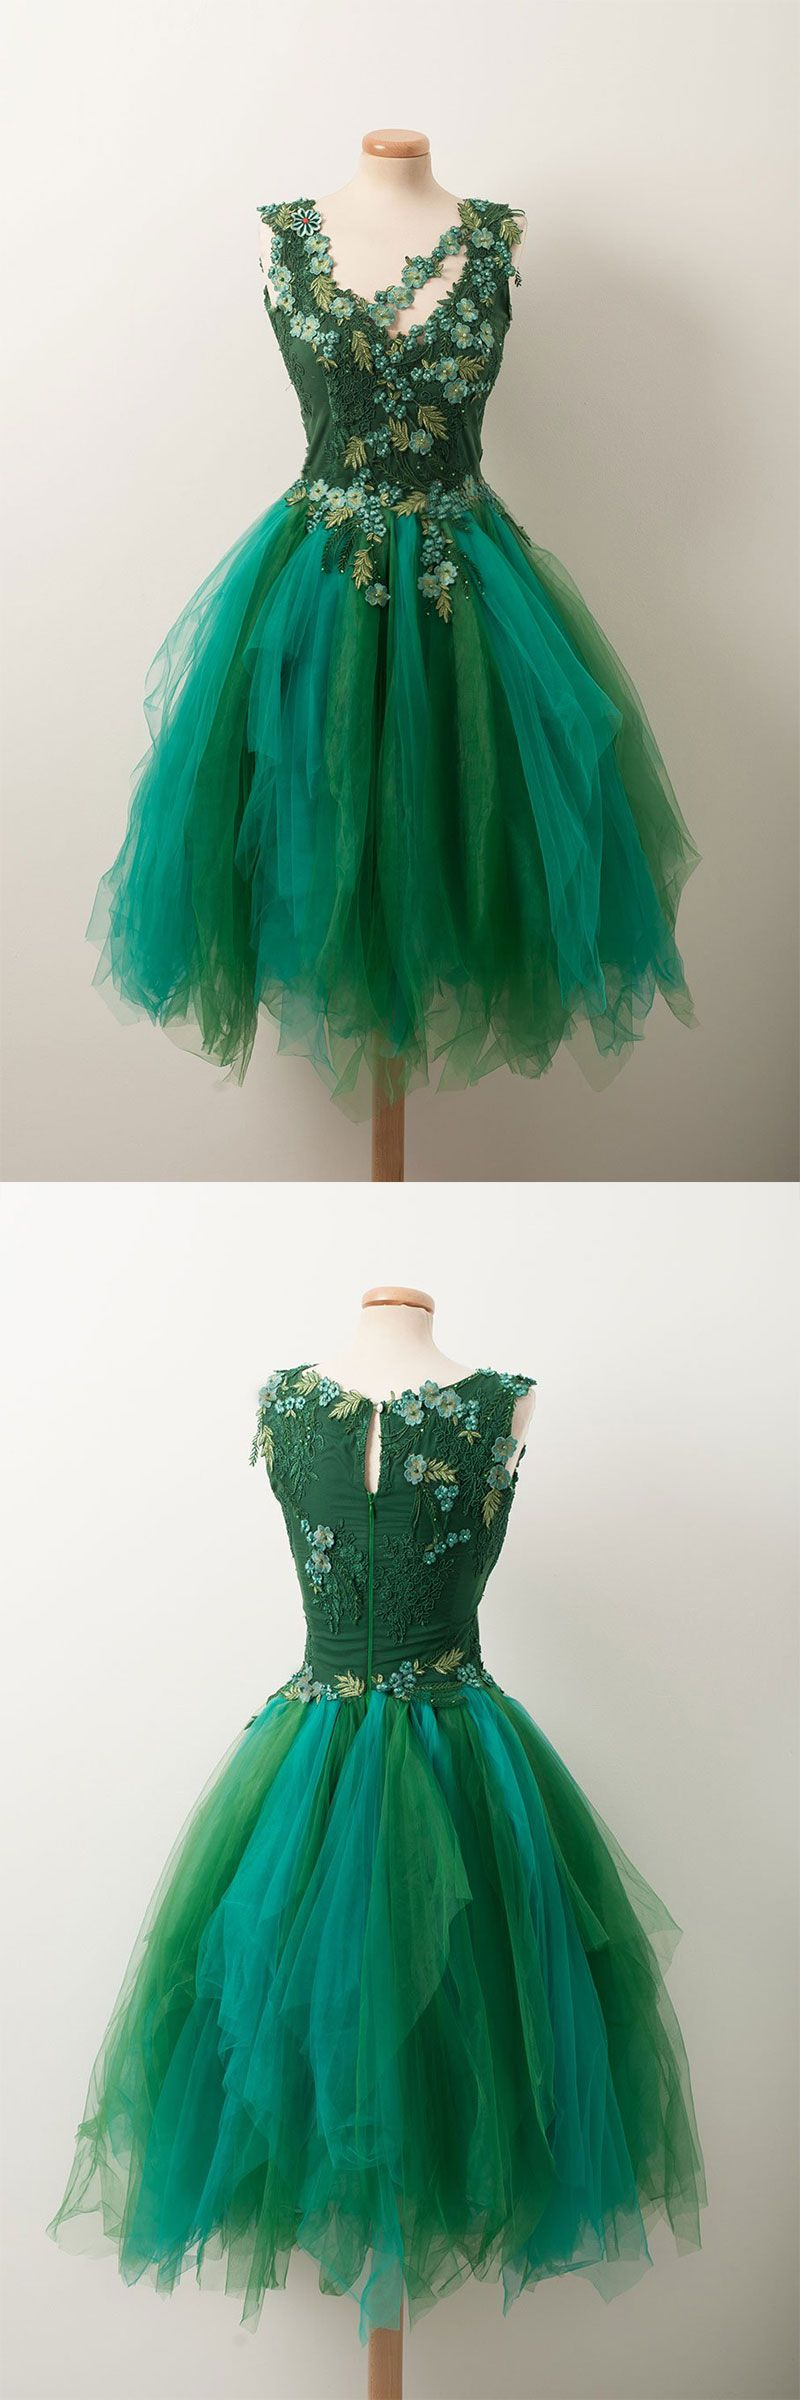 Unique v neck green tulle lace short prom dress green homecoming